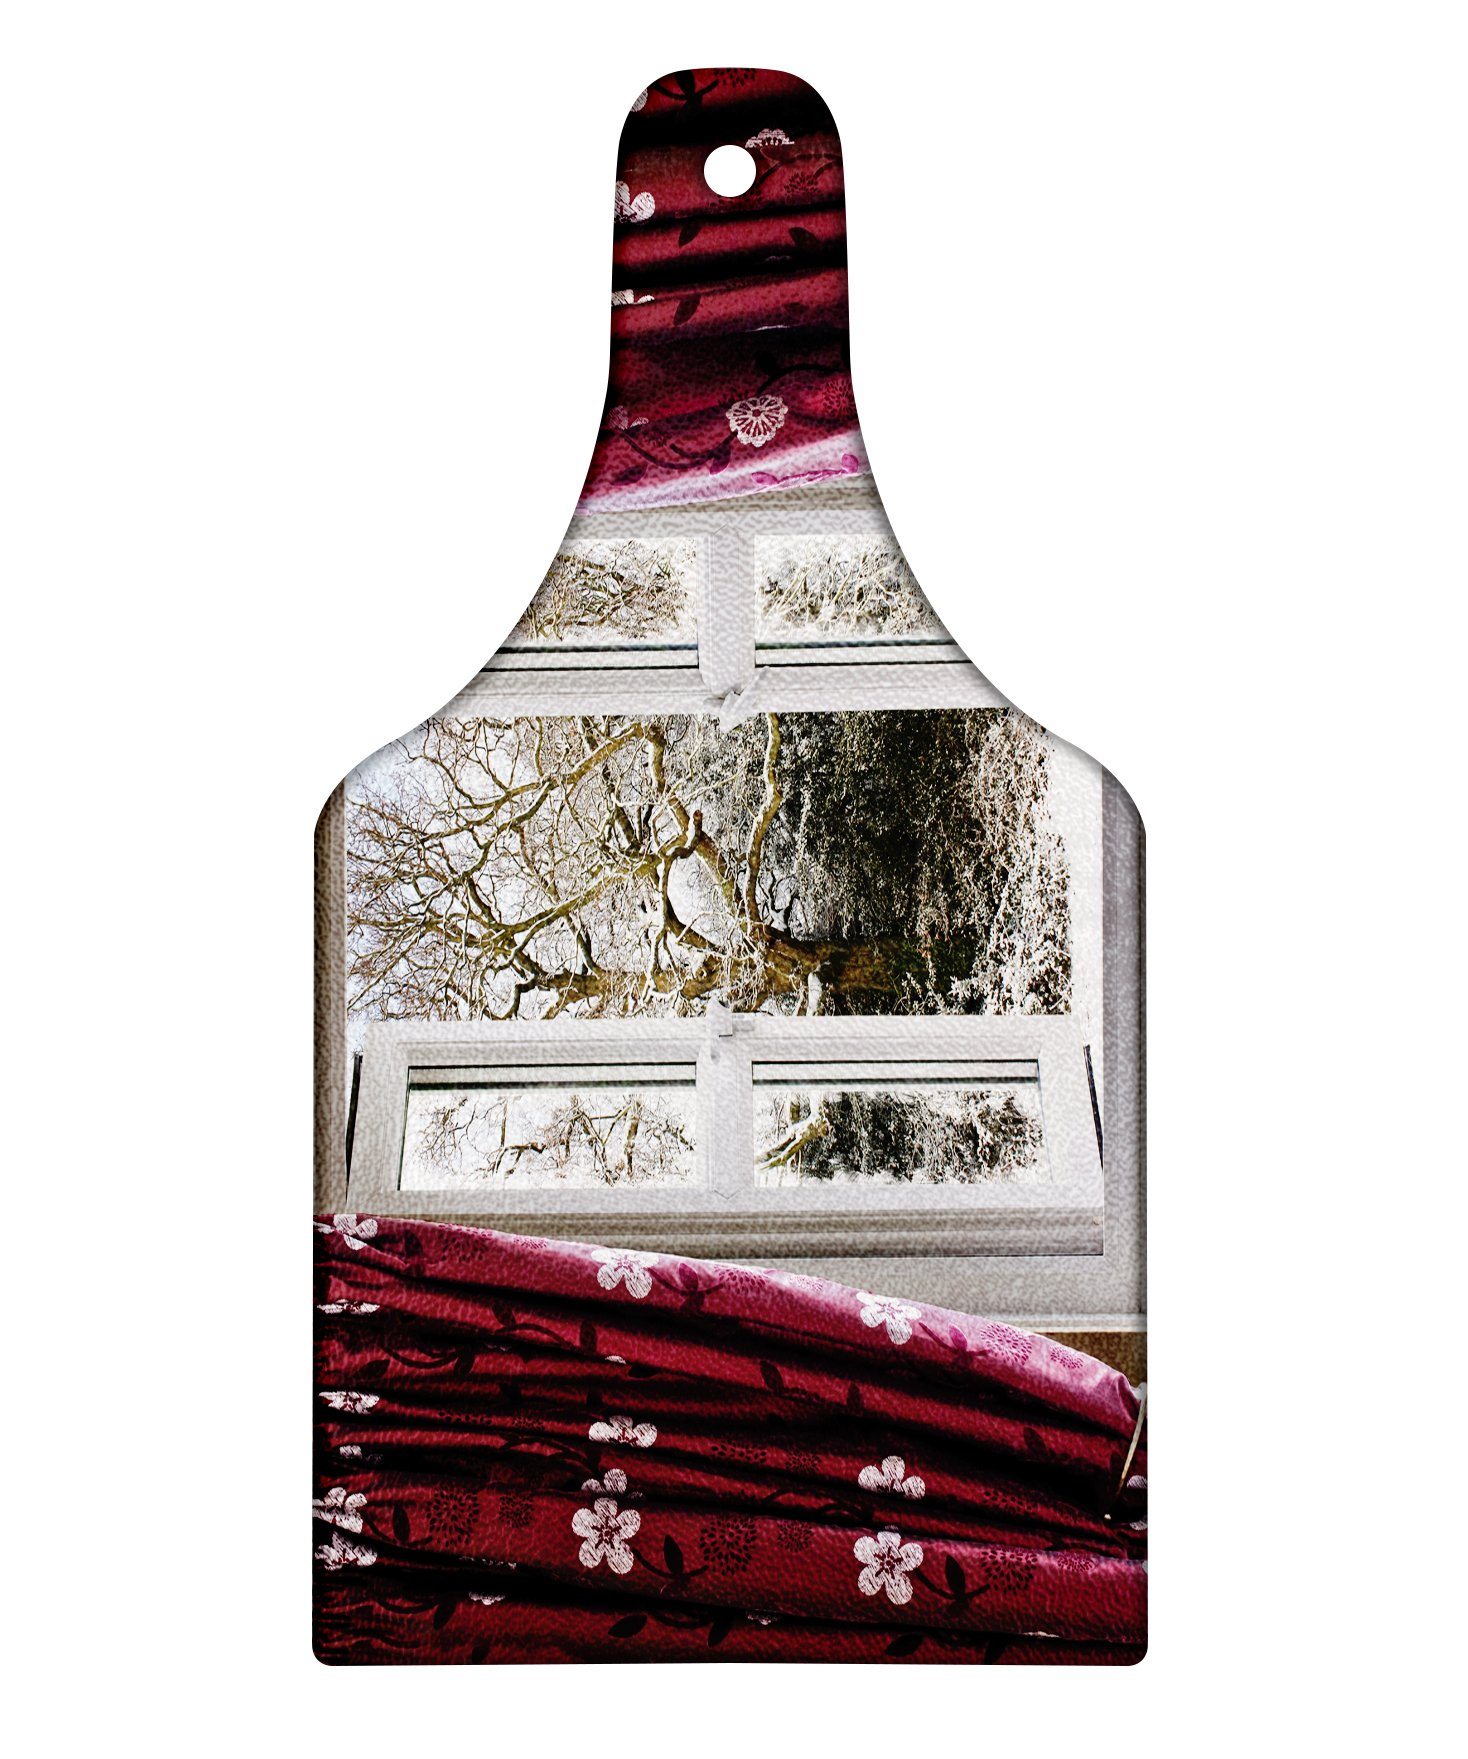 Lunarable Winter Cutting Board, Open Window with View to a Snowy Winter Scenery Pattern Curtain Drapes Frosty, Decorative Tempered Glass Cutting and Serving Board, Wine Bottle Shape, Maroon White